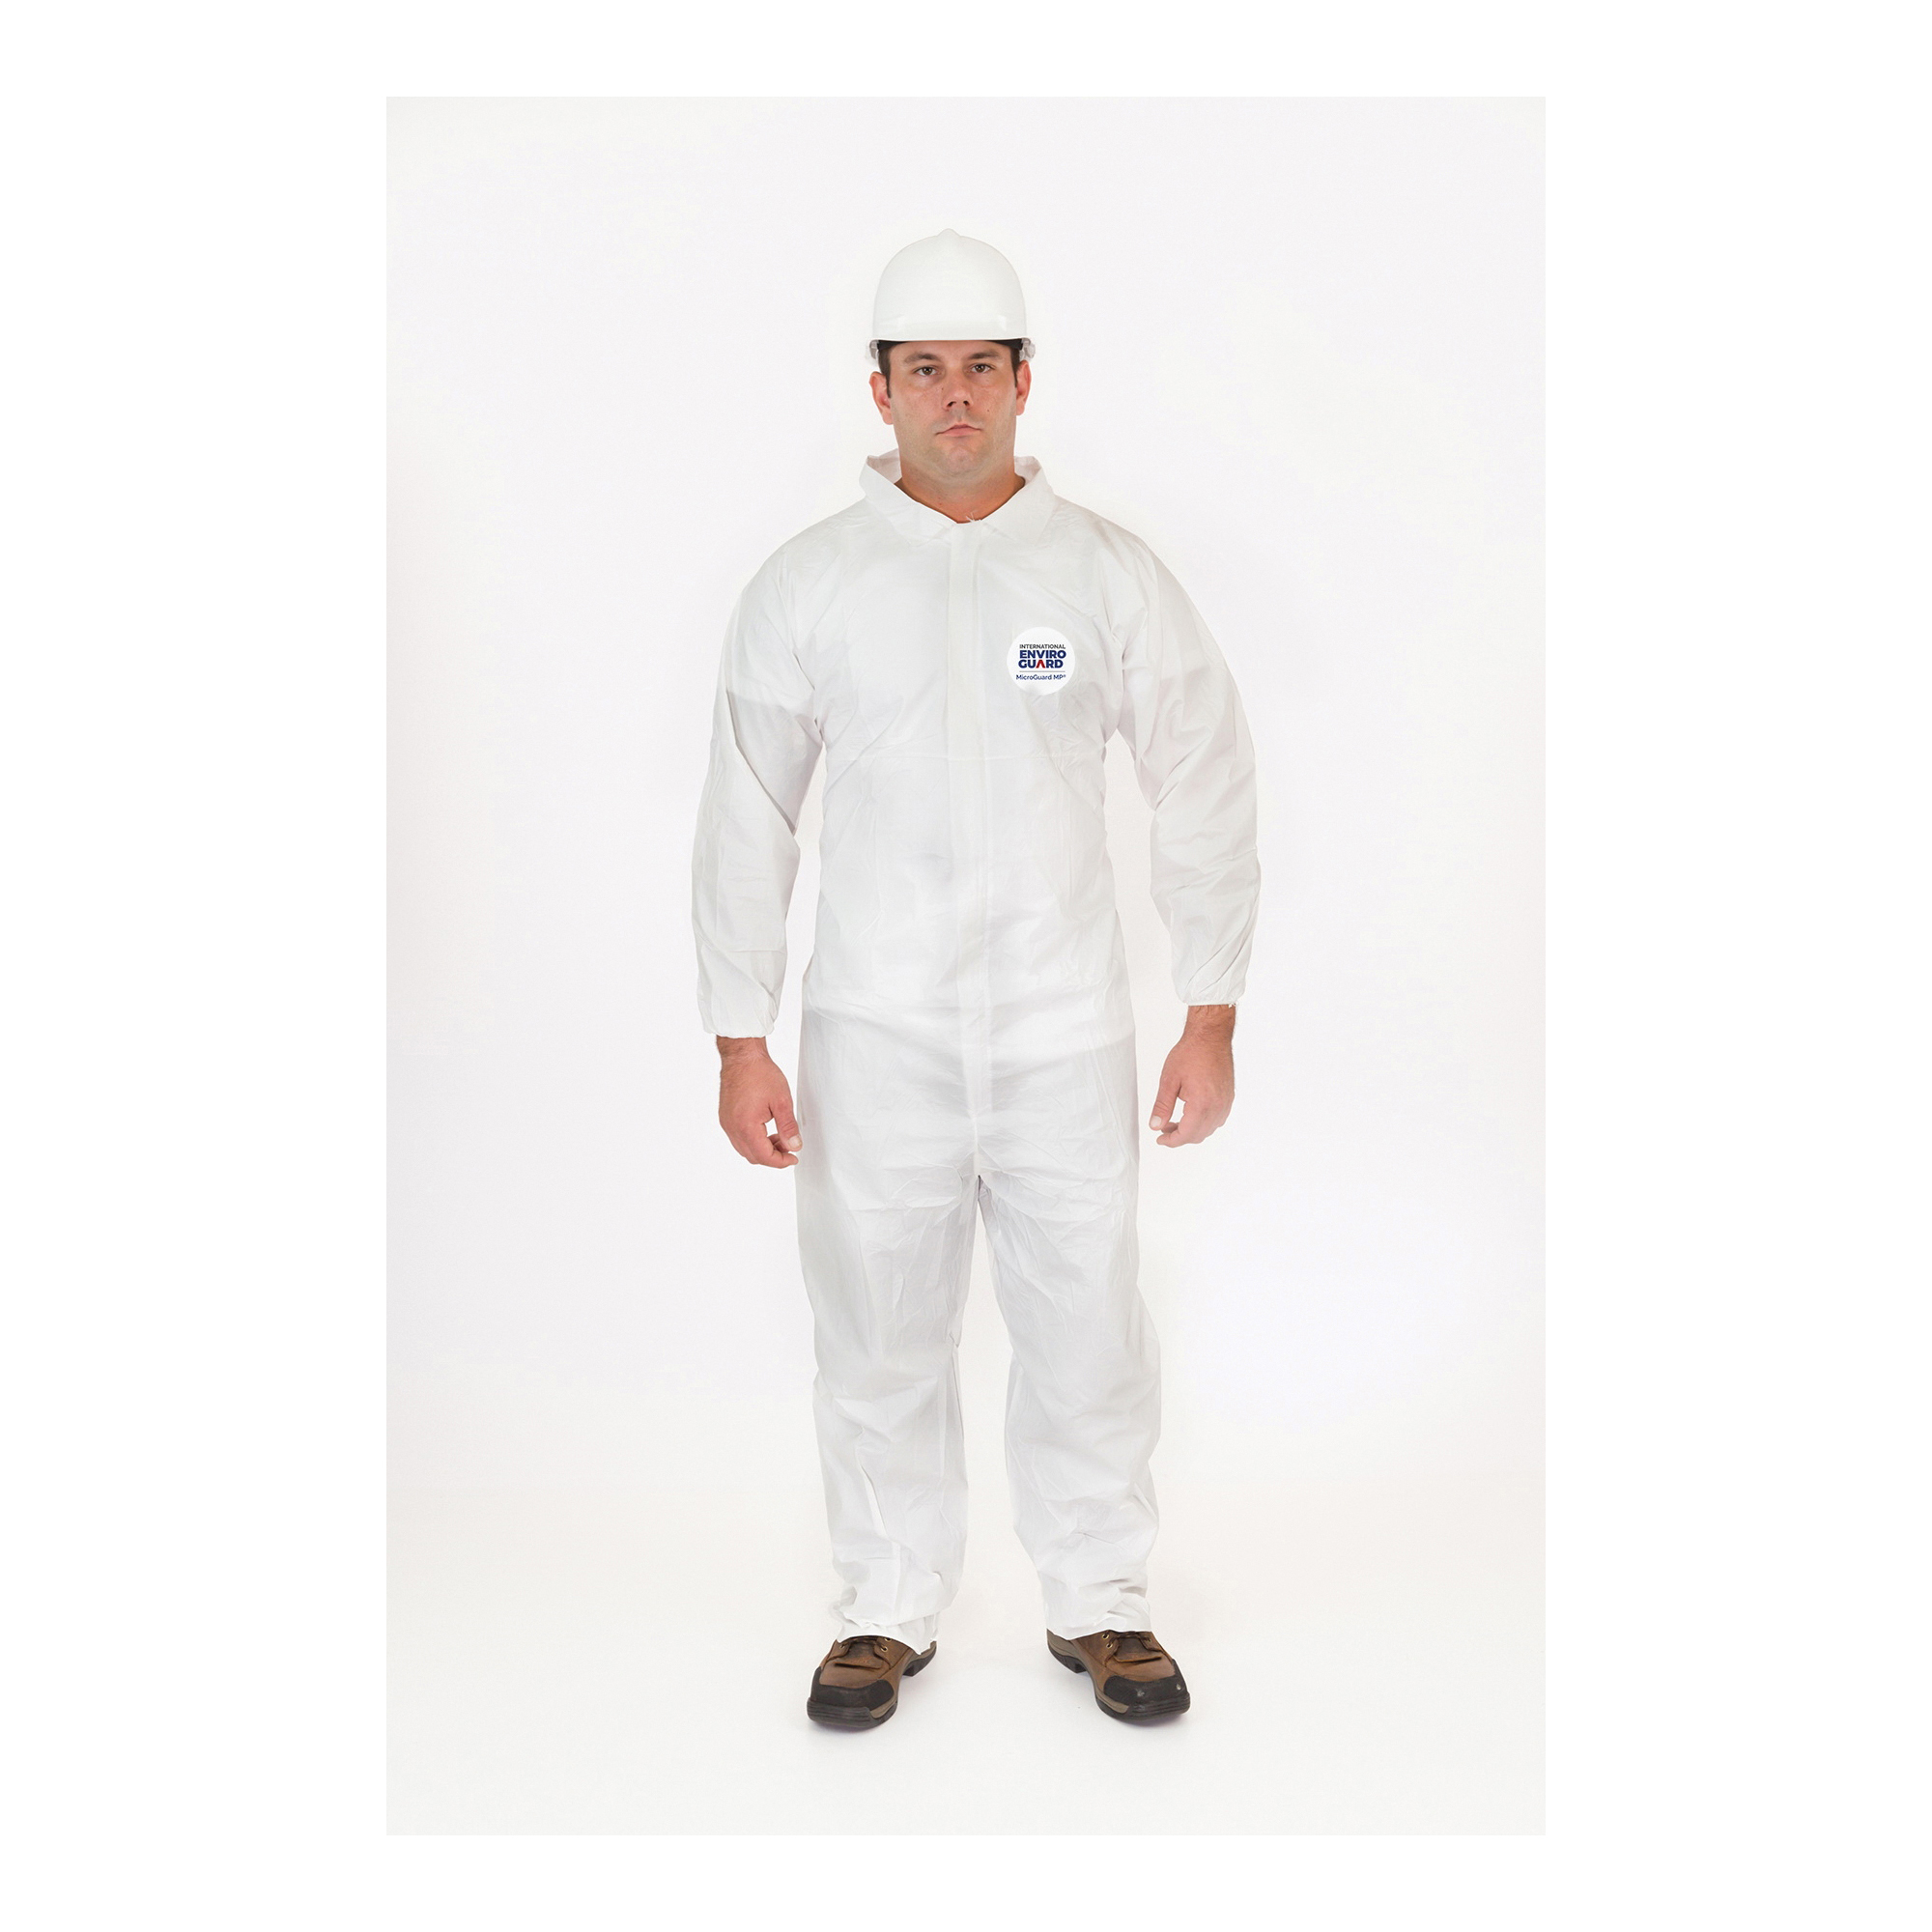 MicroGuard MP® 8012-2XL Breathable Disposable Coverall With Standard Collar, Elastic Wrist, Back and Open Ankle, 2XL, White, Microporous Fabric, 45 to 48 in Chest, 30-1/2 in L Inseam